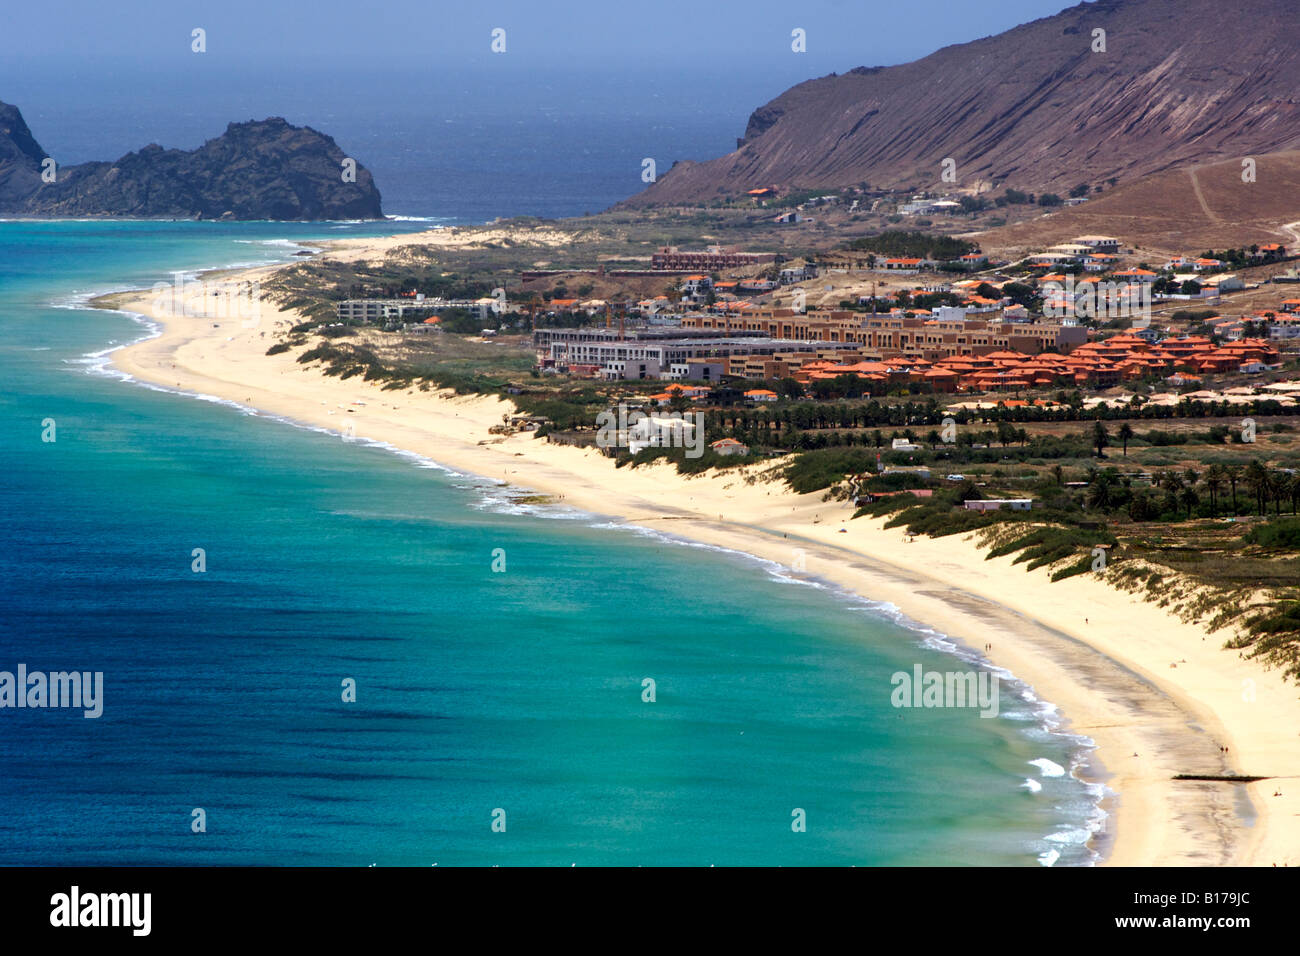 View of the beach seen from the Portela lookout point on the Portuguese Atlantic island of Porto Santo. - Stock Image